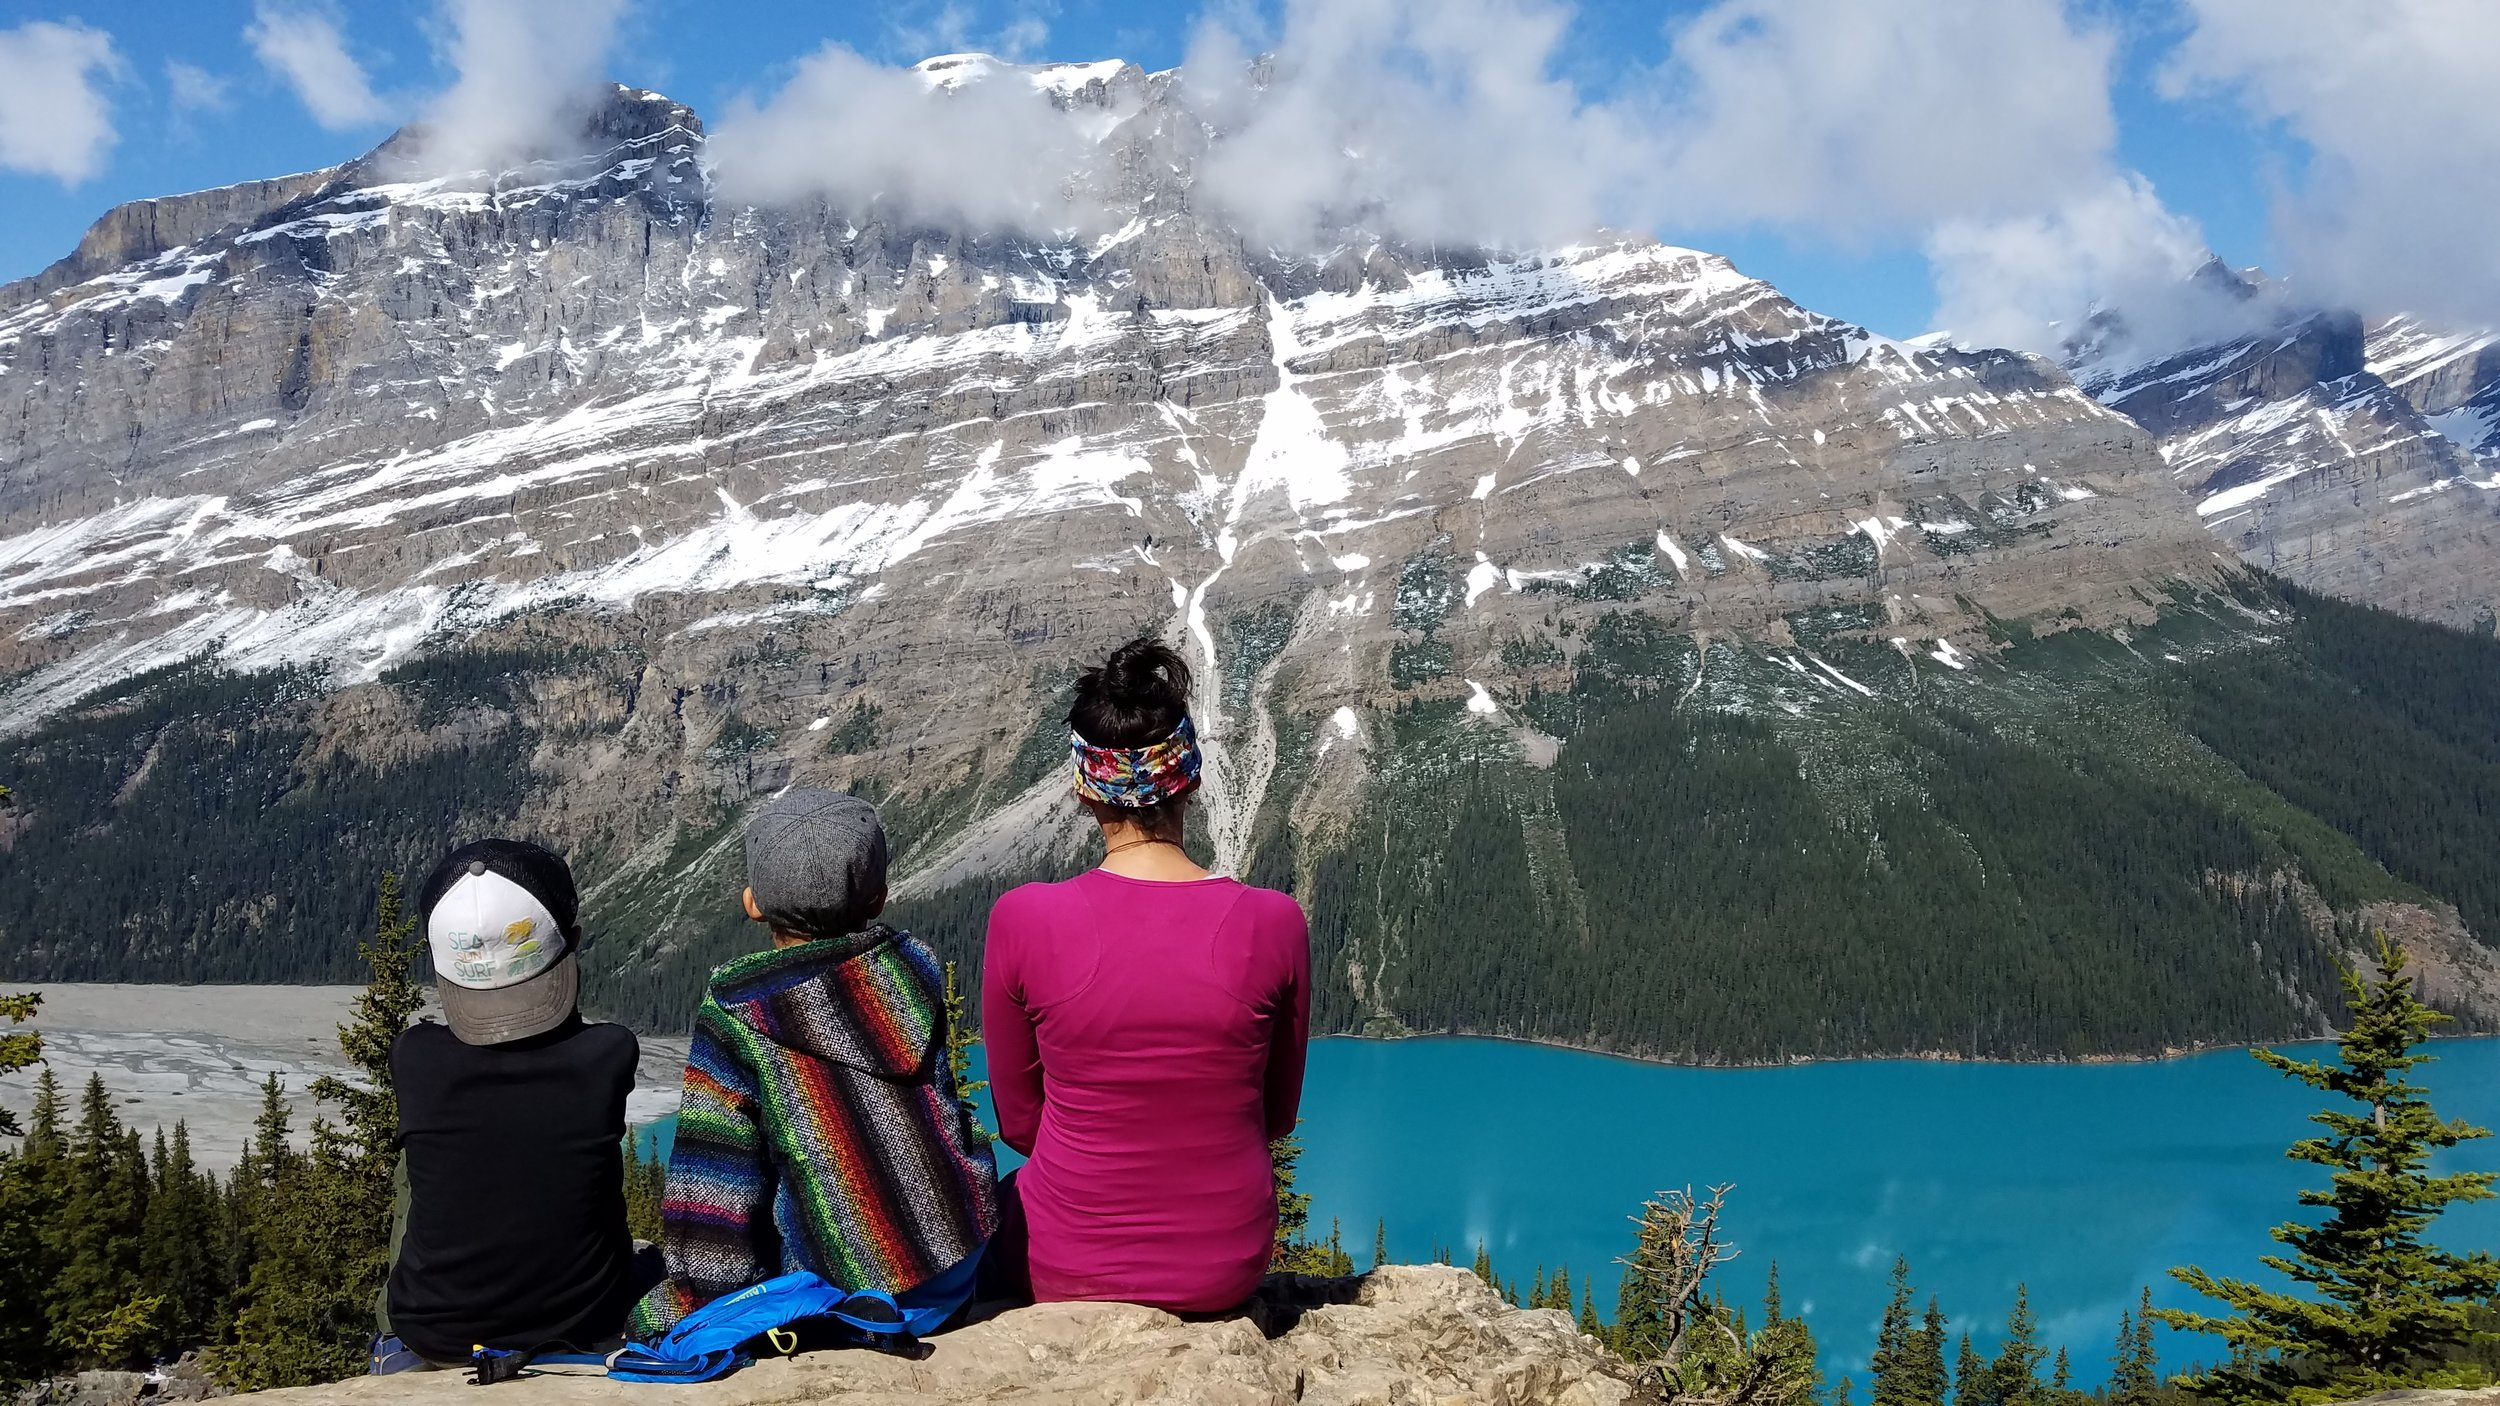 Snacking, staring, and probably crying (me!) while enjoying the views of Peyto Lake.